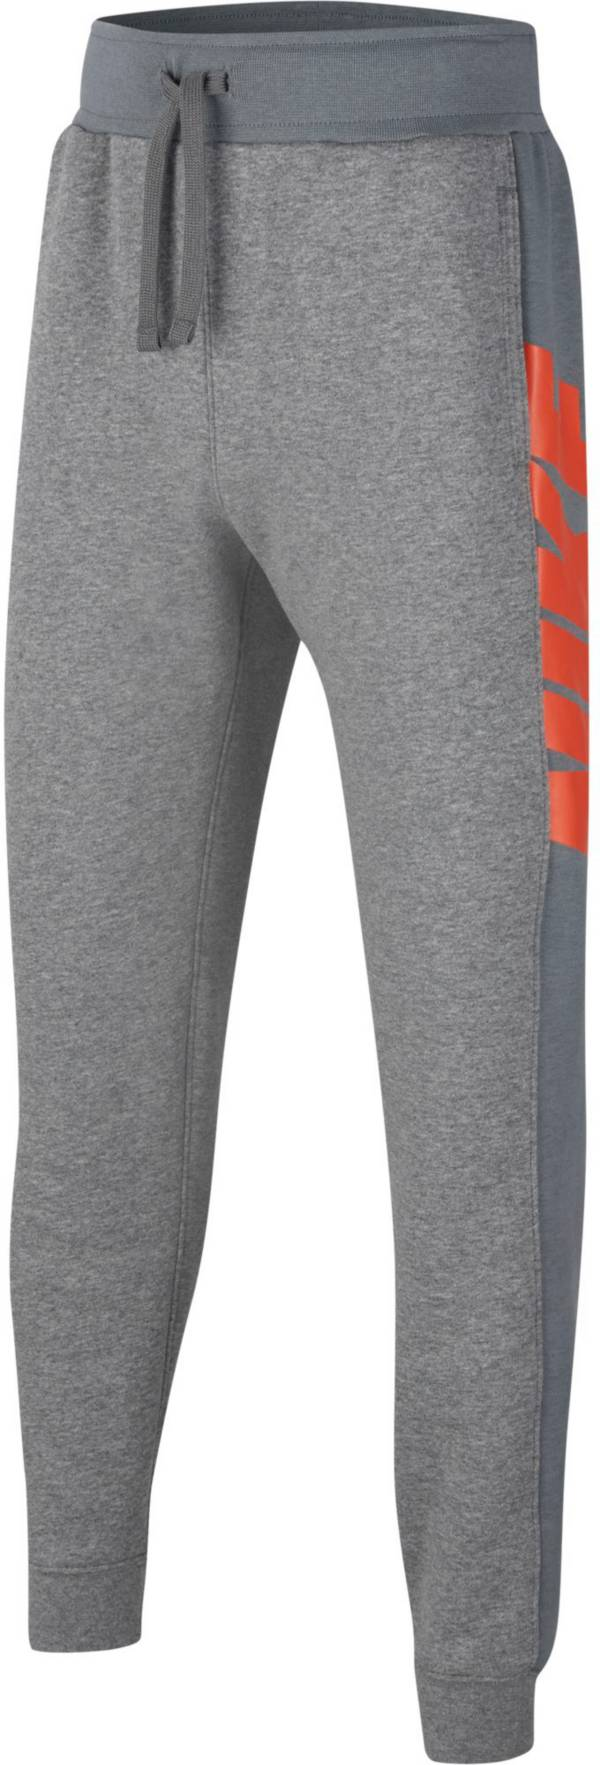 Nike Boys' Sportswear Amplify Pants product image